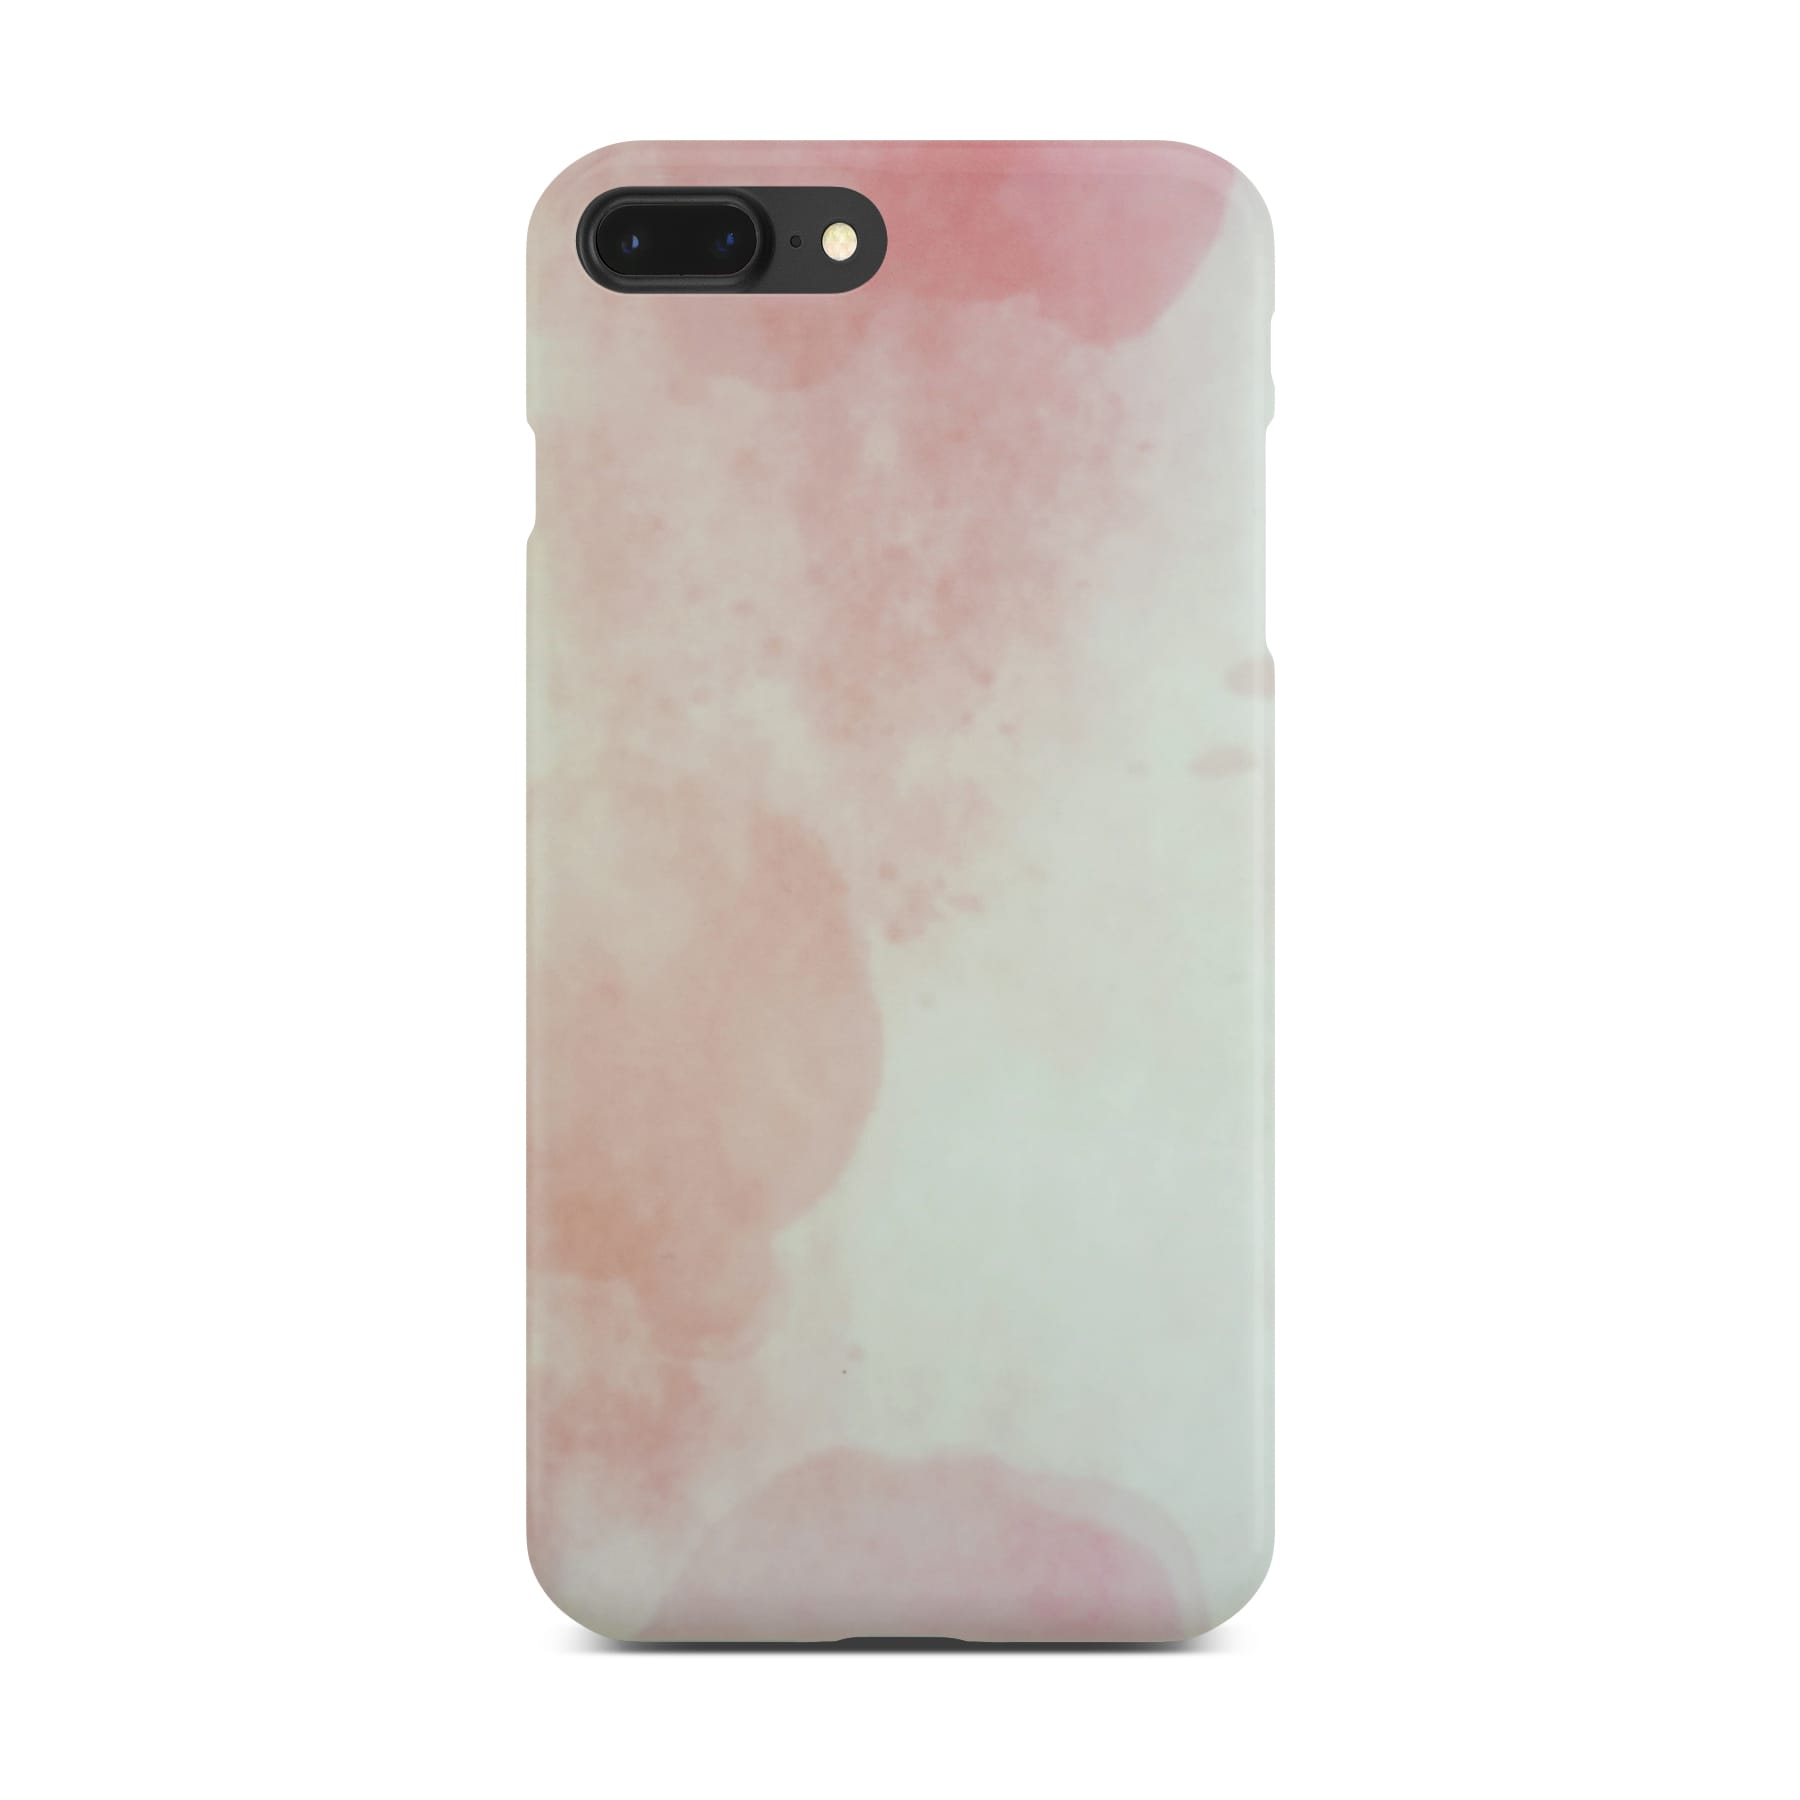 Matt Pink Marble Case On Space Gray iPhone 8 Plus